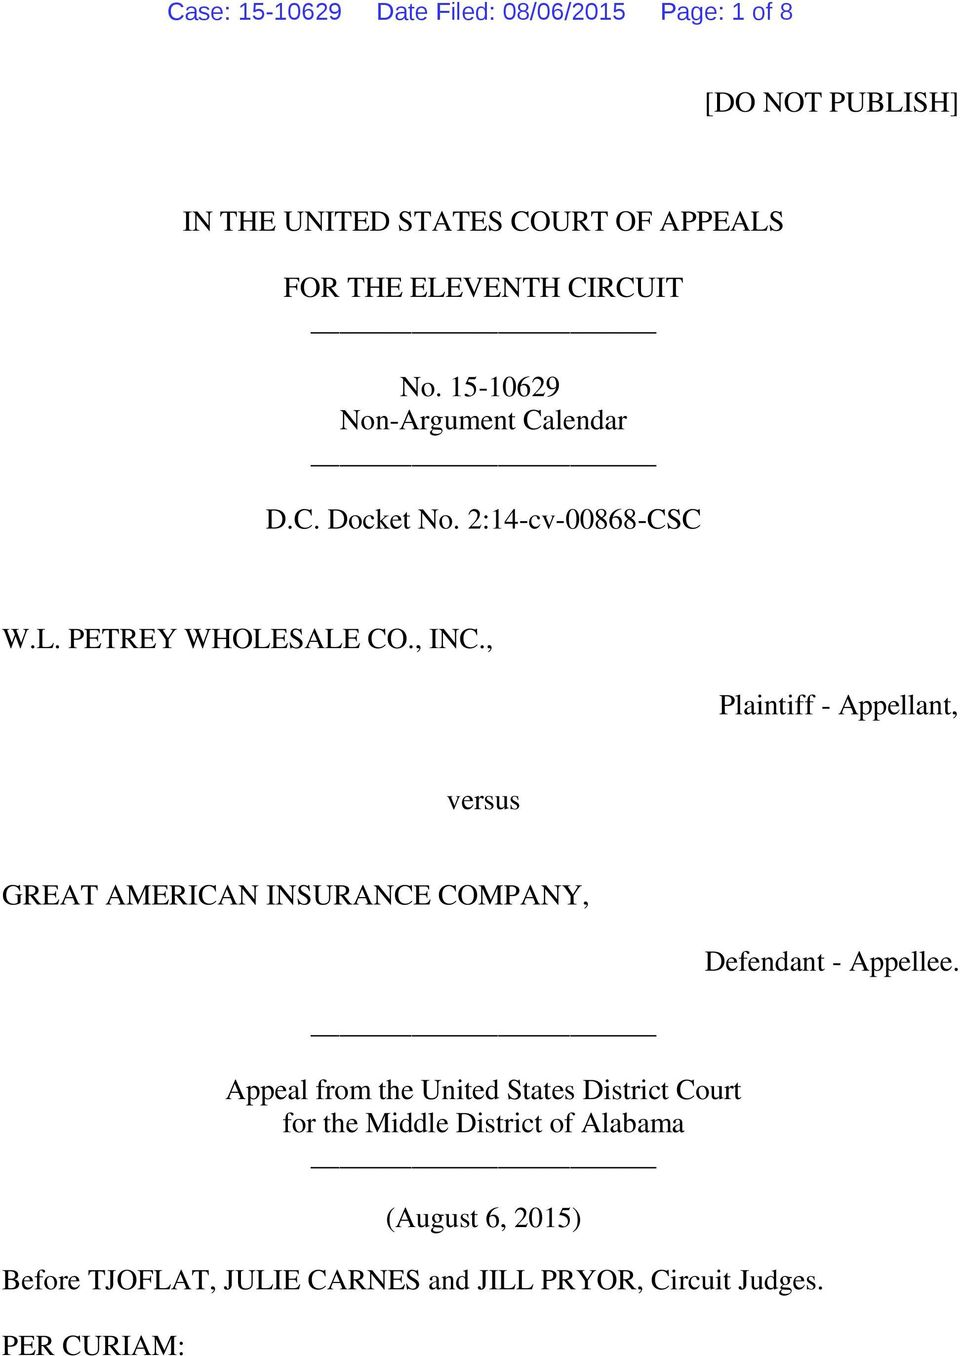 , Plaintiff - Appellant, versus GREAT AMERICAN INSURANCE COMPANY, Appeal from the United States District Court for the